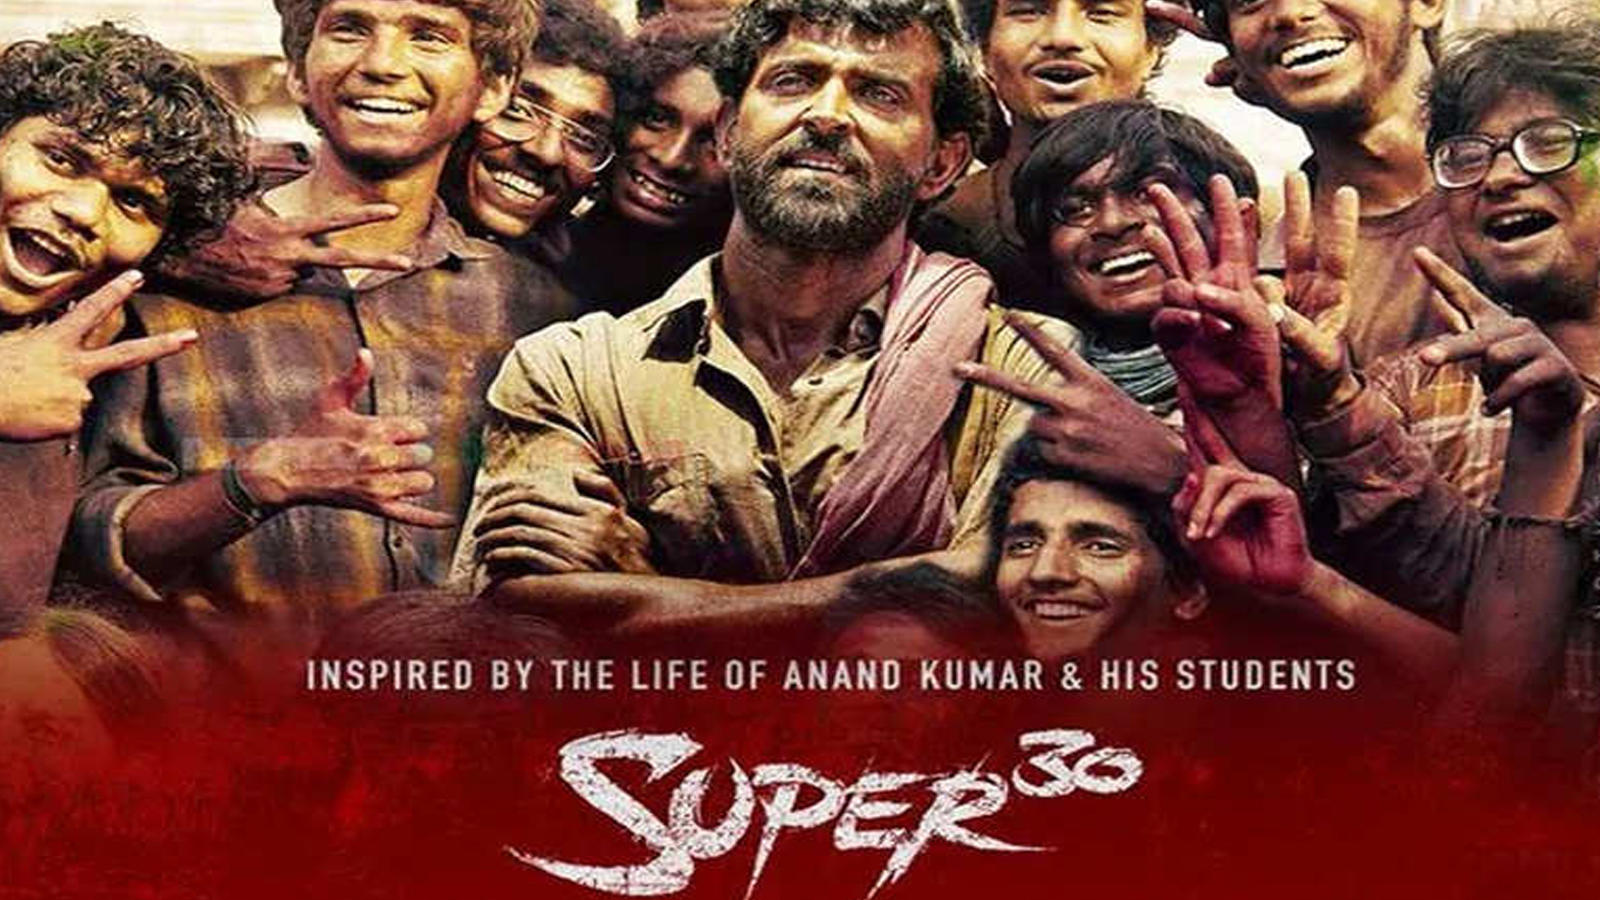 Super 30 Full Movie Box Office Collection Day 6 The Hrithik Roshan